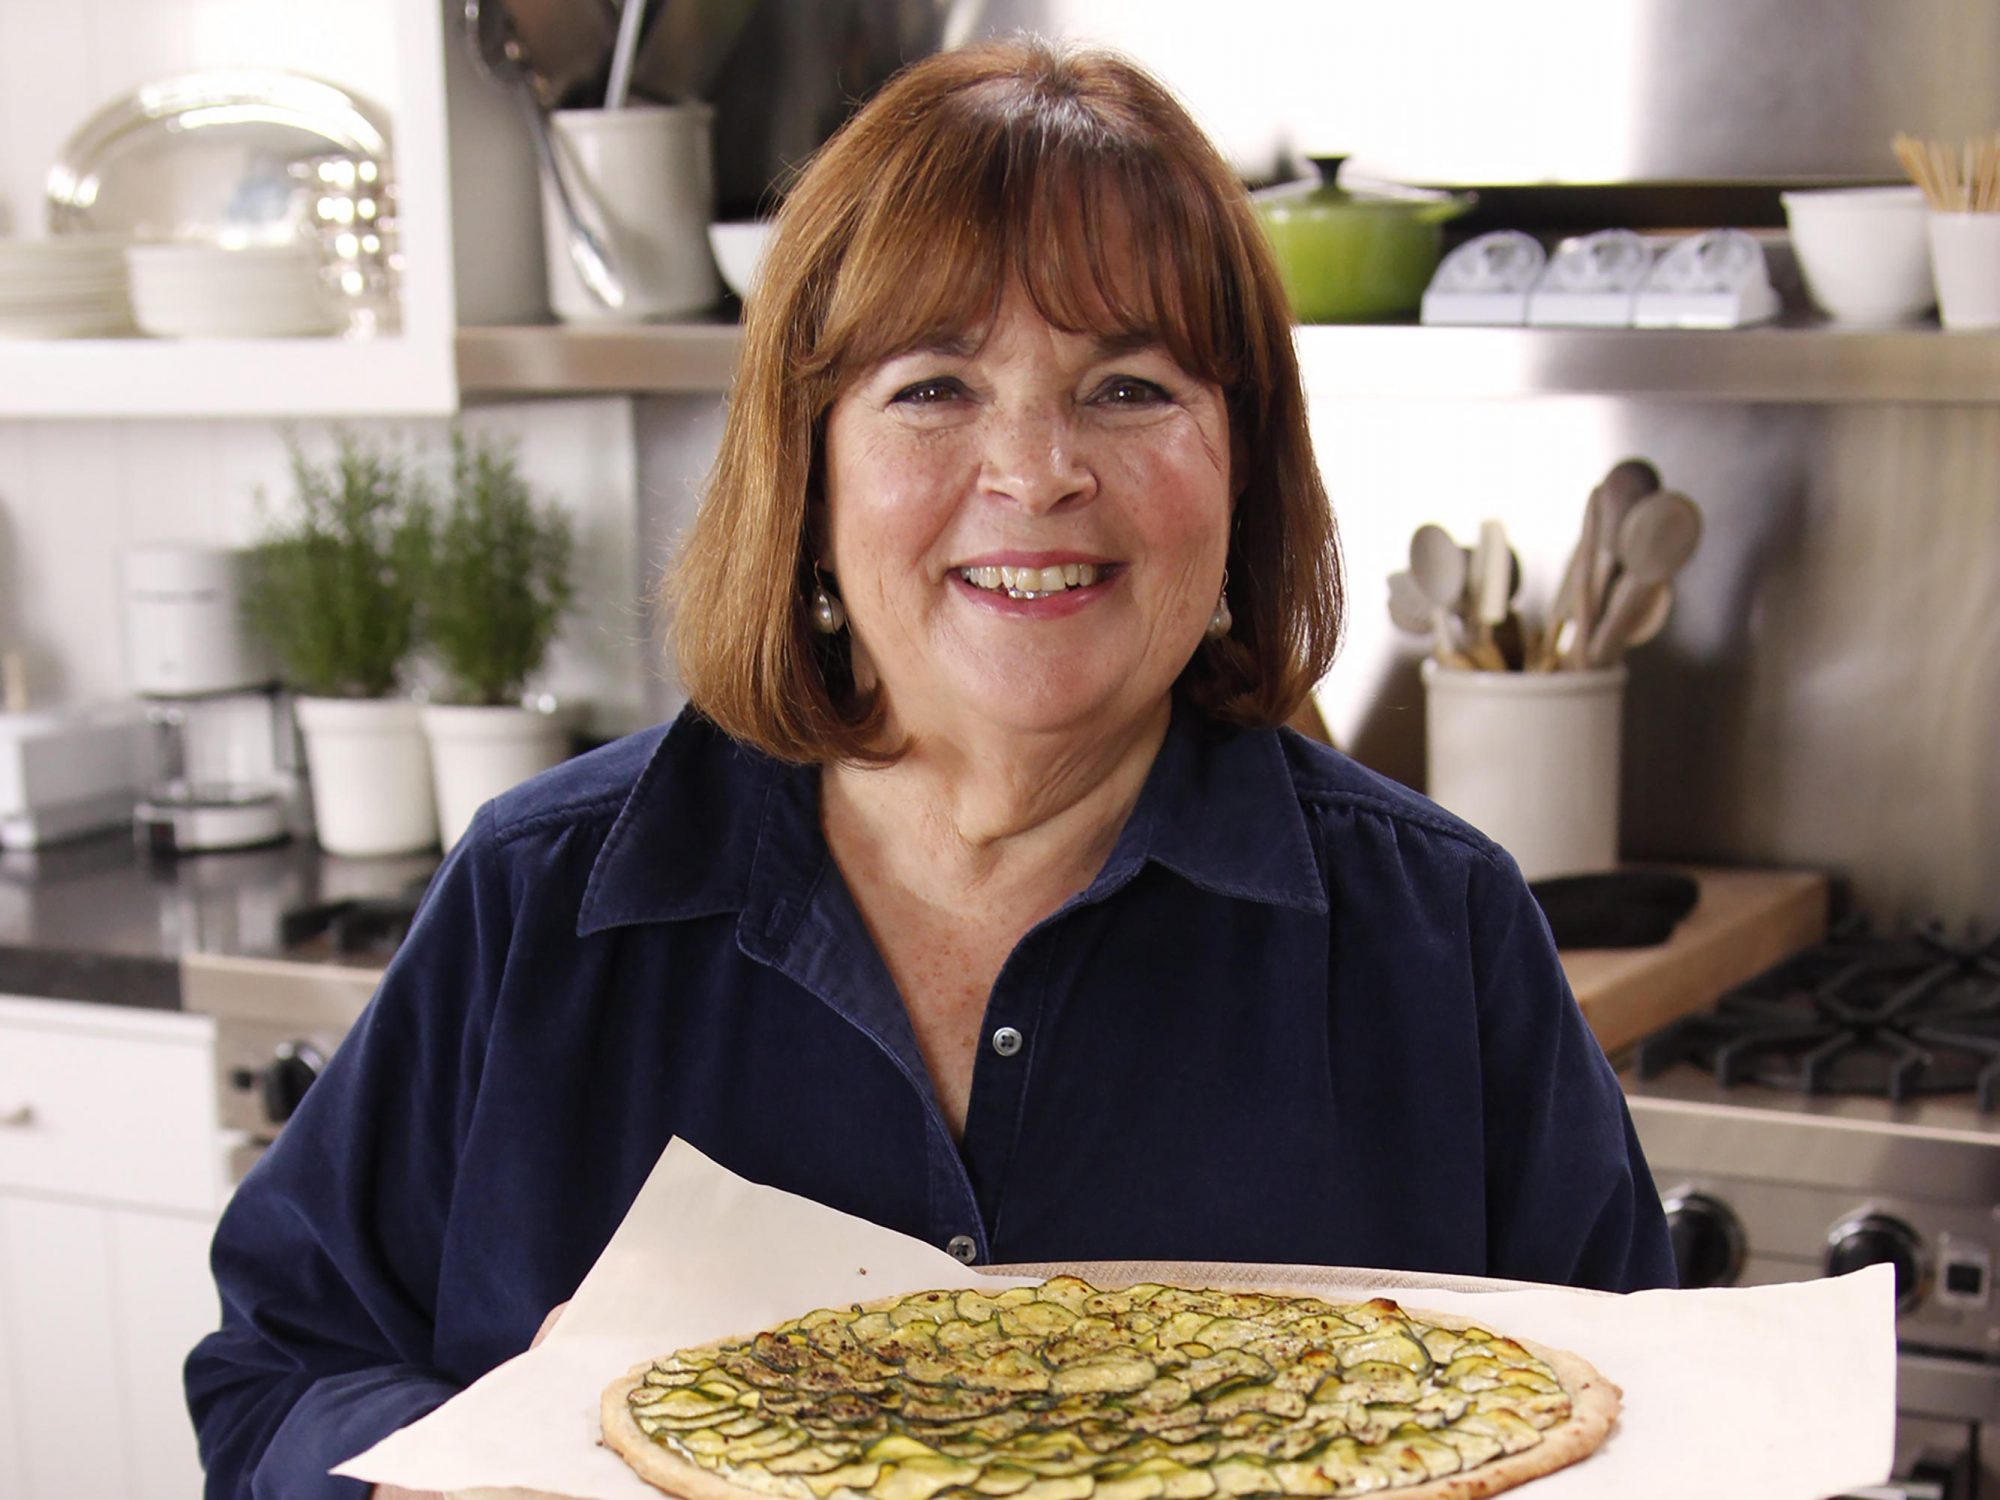 Ina Garten's 8 Essential Tips for Nailing Thanksgiving This Year 1810w-Ina-Garten-Pizza